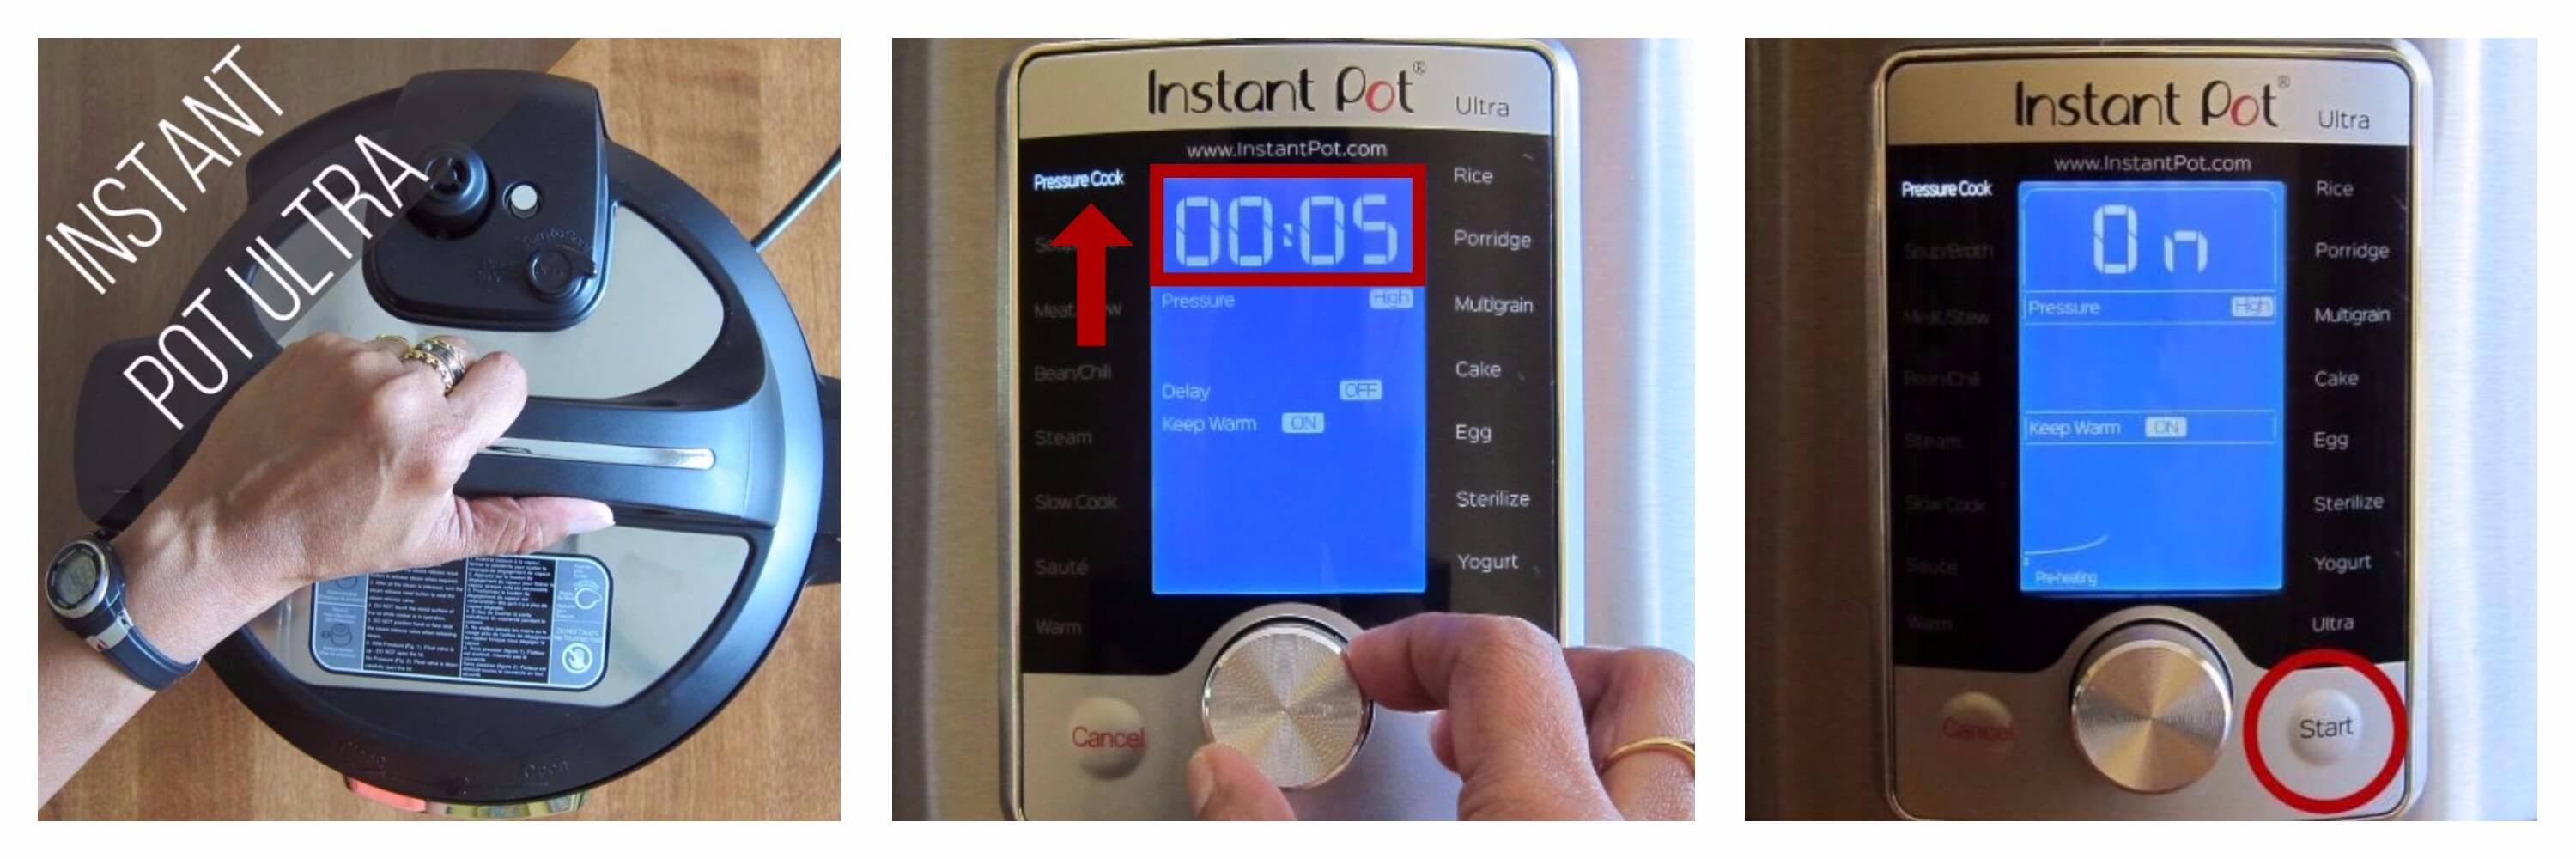 Instant Pot Ultra pressure cook 5 minutes collage - close Instant Pot Ultra, set time to 00:05 and select Pressure Cook, press start - Paint the Kitchen Red